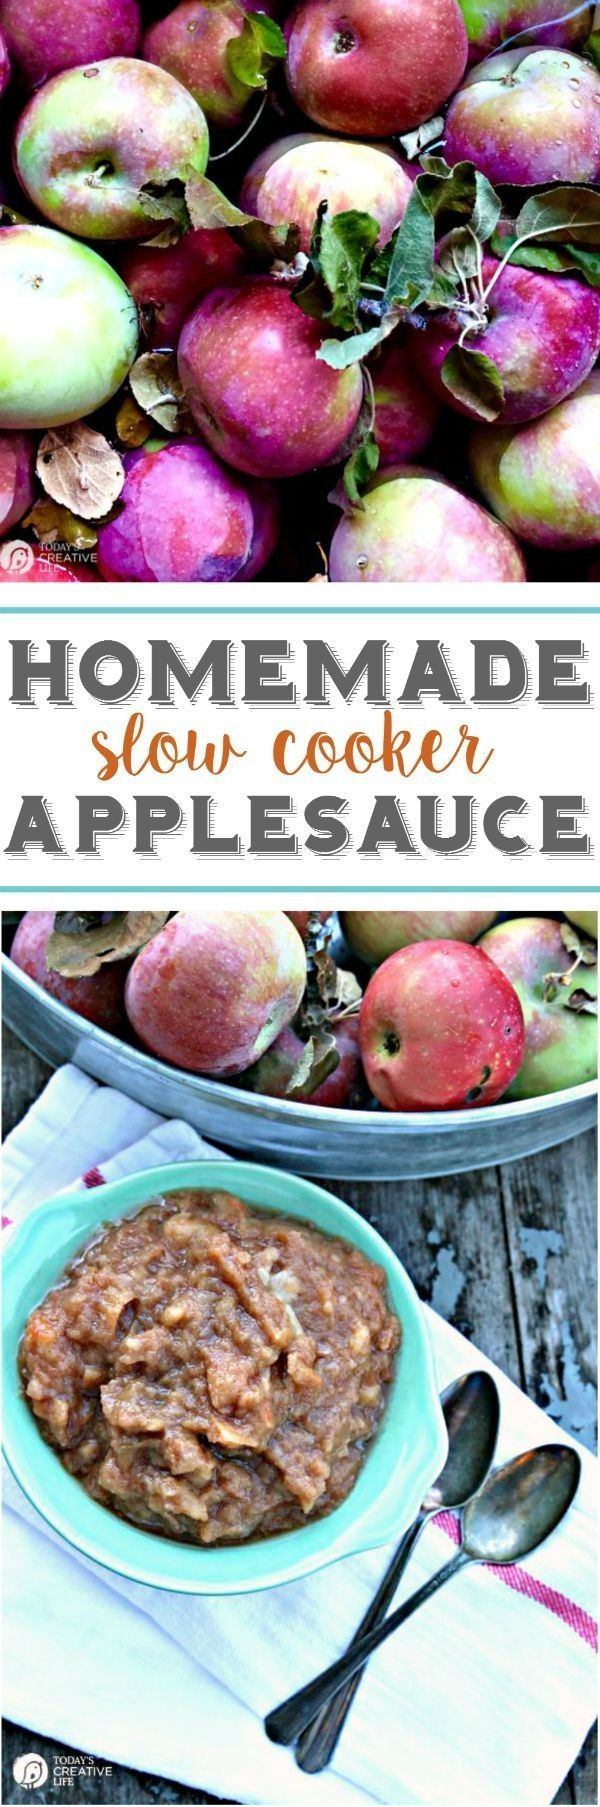 Homemade Slow Cooker Applesauce | Sweet, tangy and delicious! So easy to make using your crockpot! See more Slow Cooker Sunday Recipes on http://TodaysCreativeLife.com